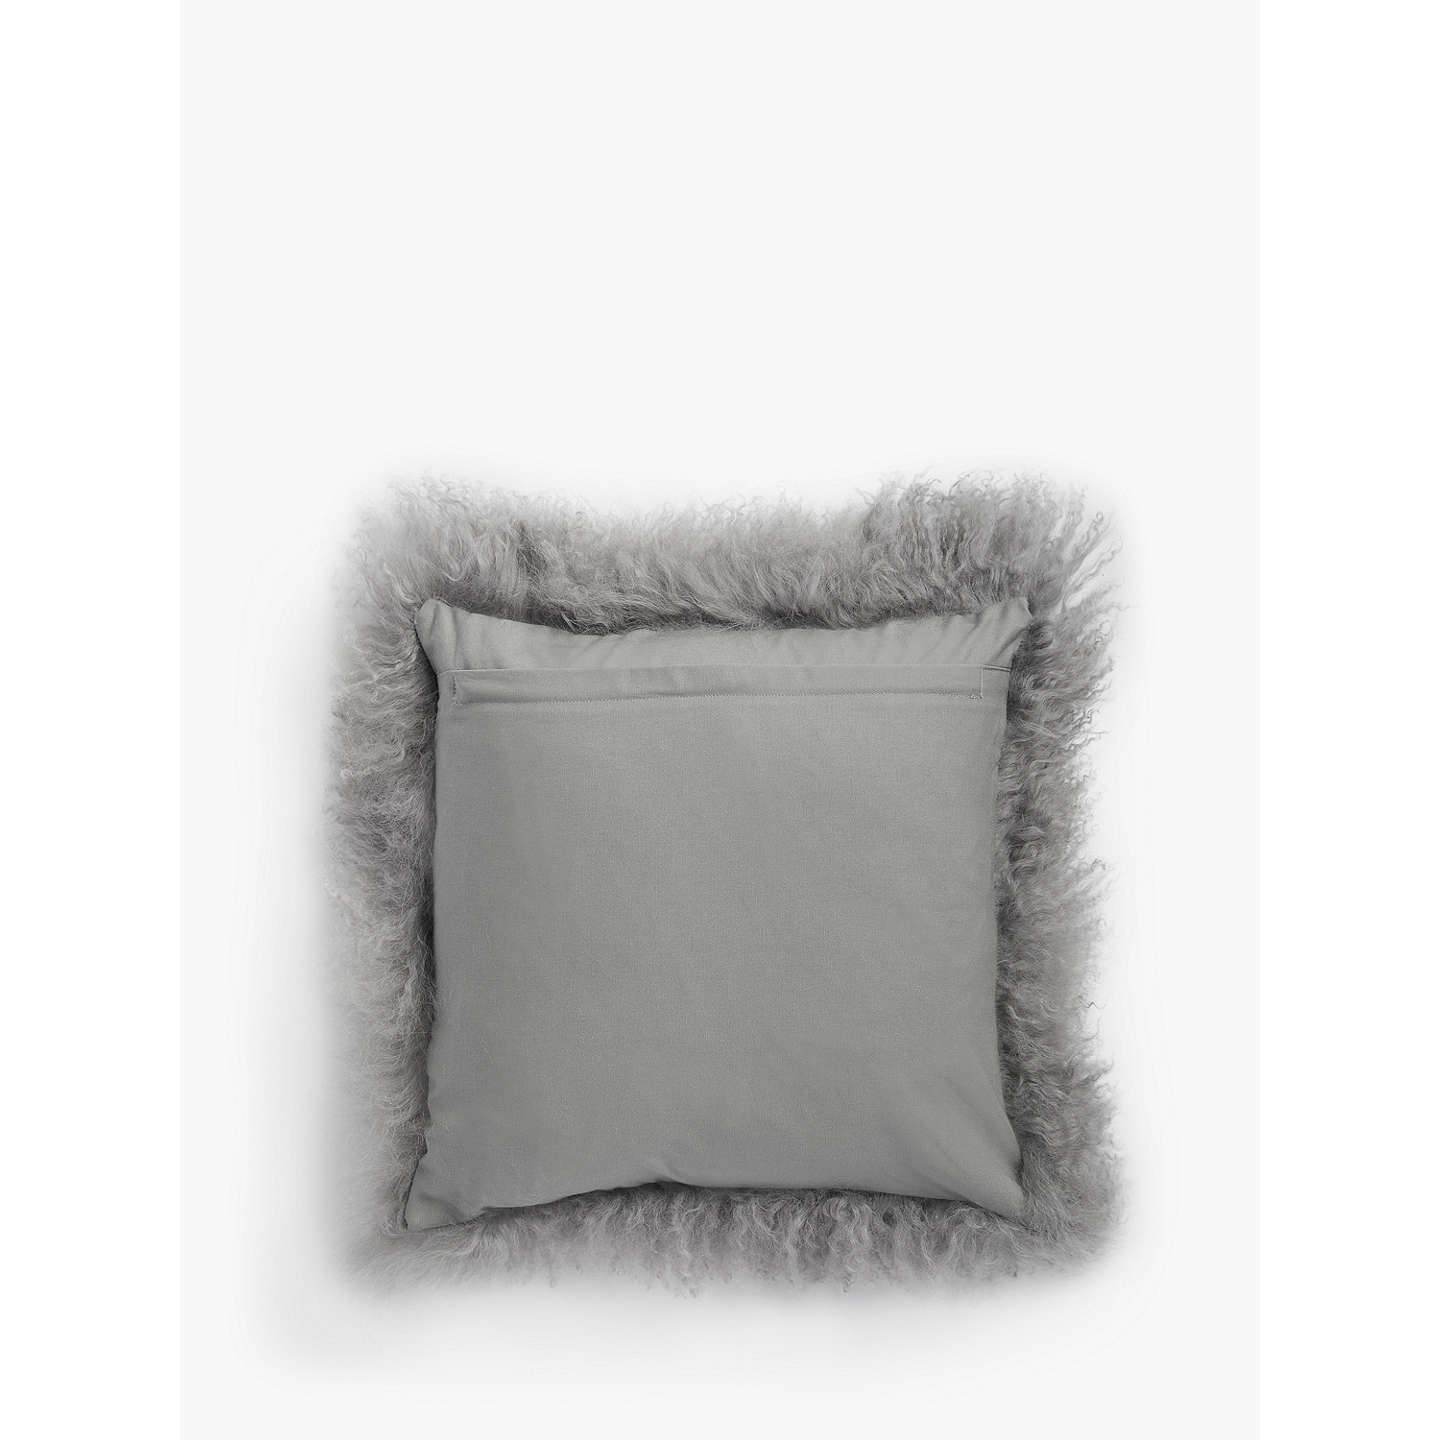 BuyCroft Collection Mongolian Sheep Hair Cushion, Soft Grey Online at johnlewis.com